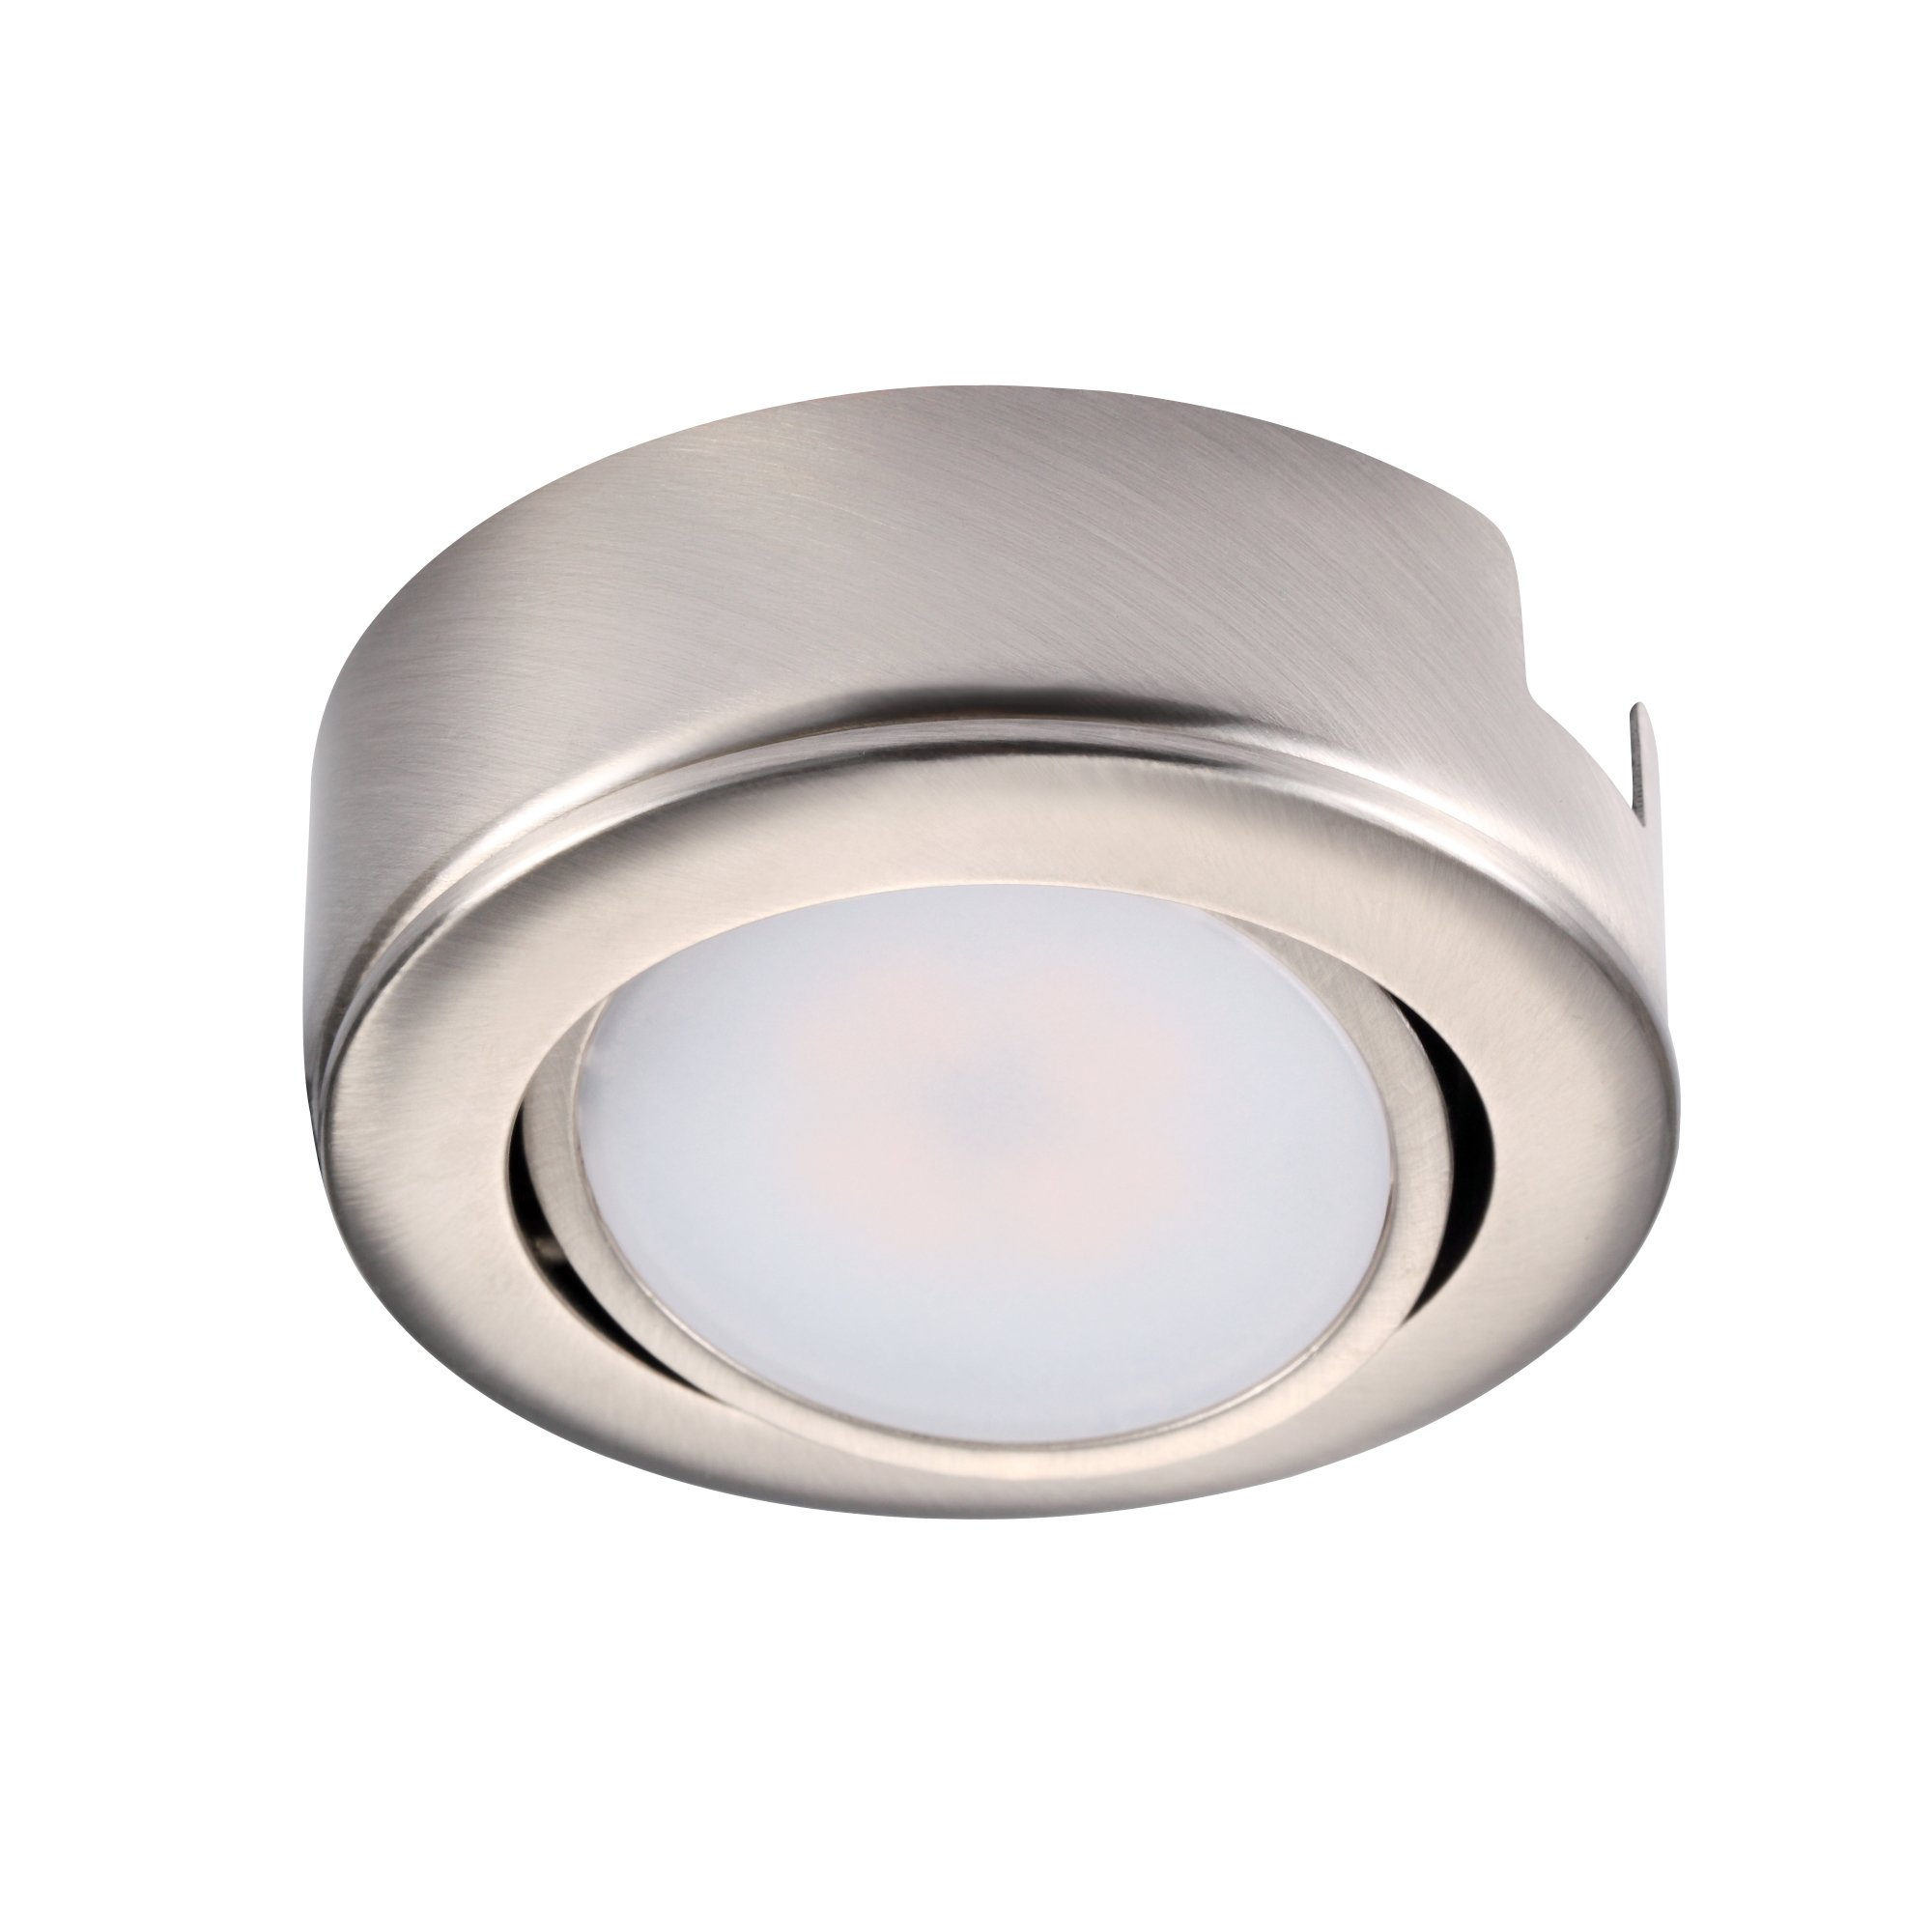 GetInLight Dimmable and Swivel, LED Puck Light with ETL List, Recessed or Surface Mount Design, Warm White 2700K, Brush Nickel Finished, Power Cord Included, IN-0107-1S-SN-27 by GETINLIGHT